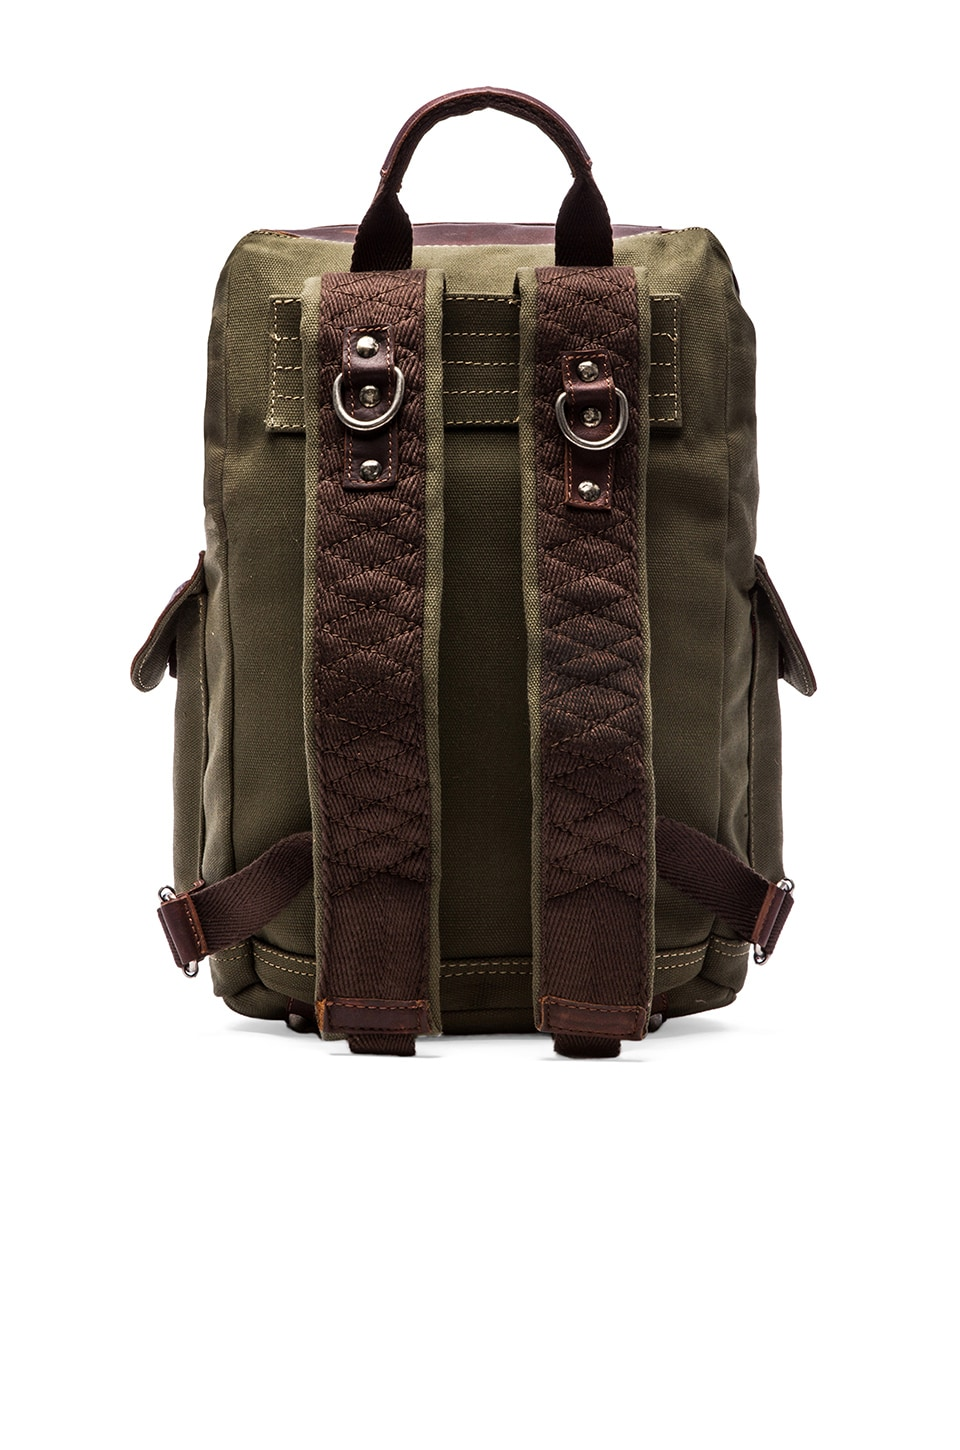 WILL Leather Goods Lennon Rucksack in Loden/Espresso